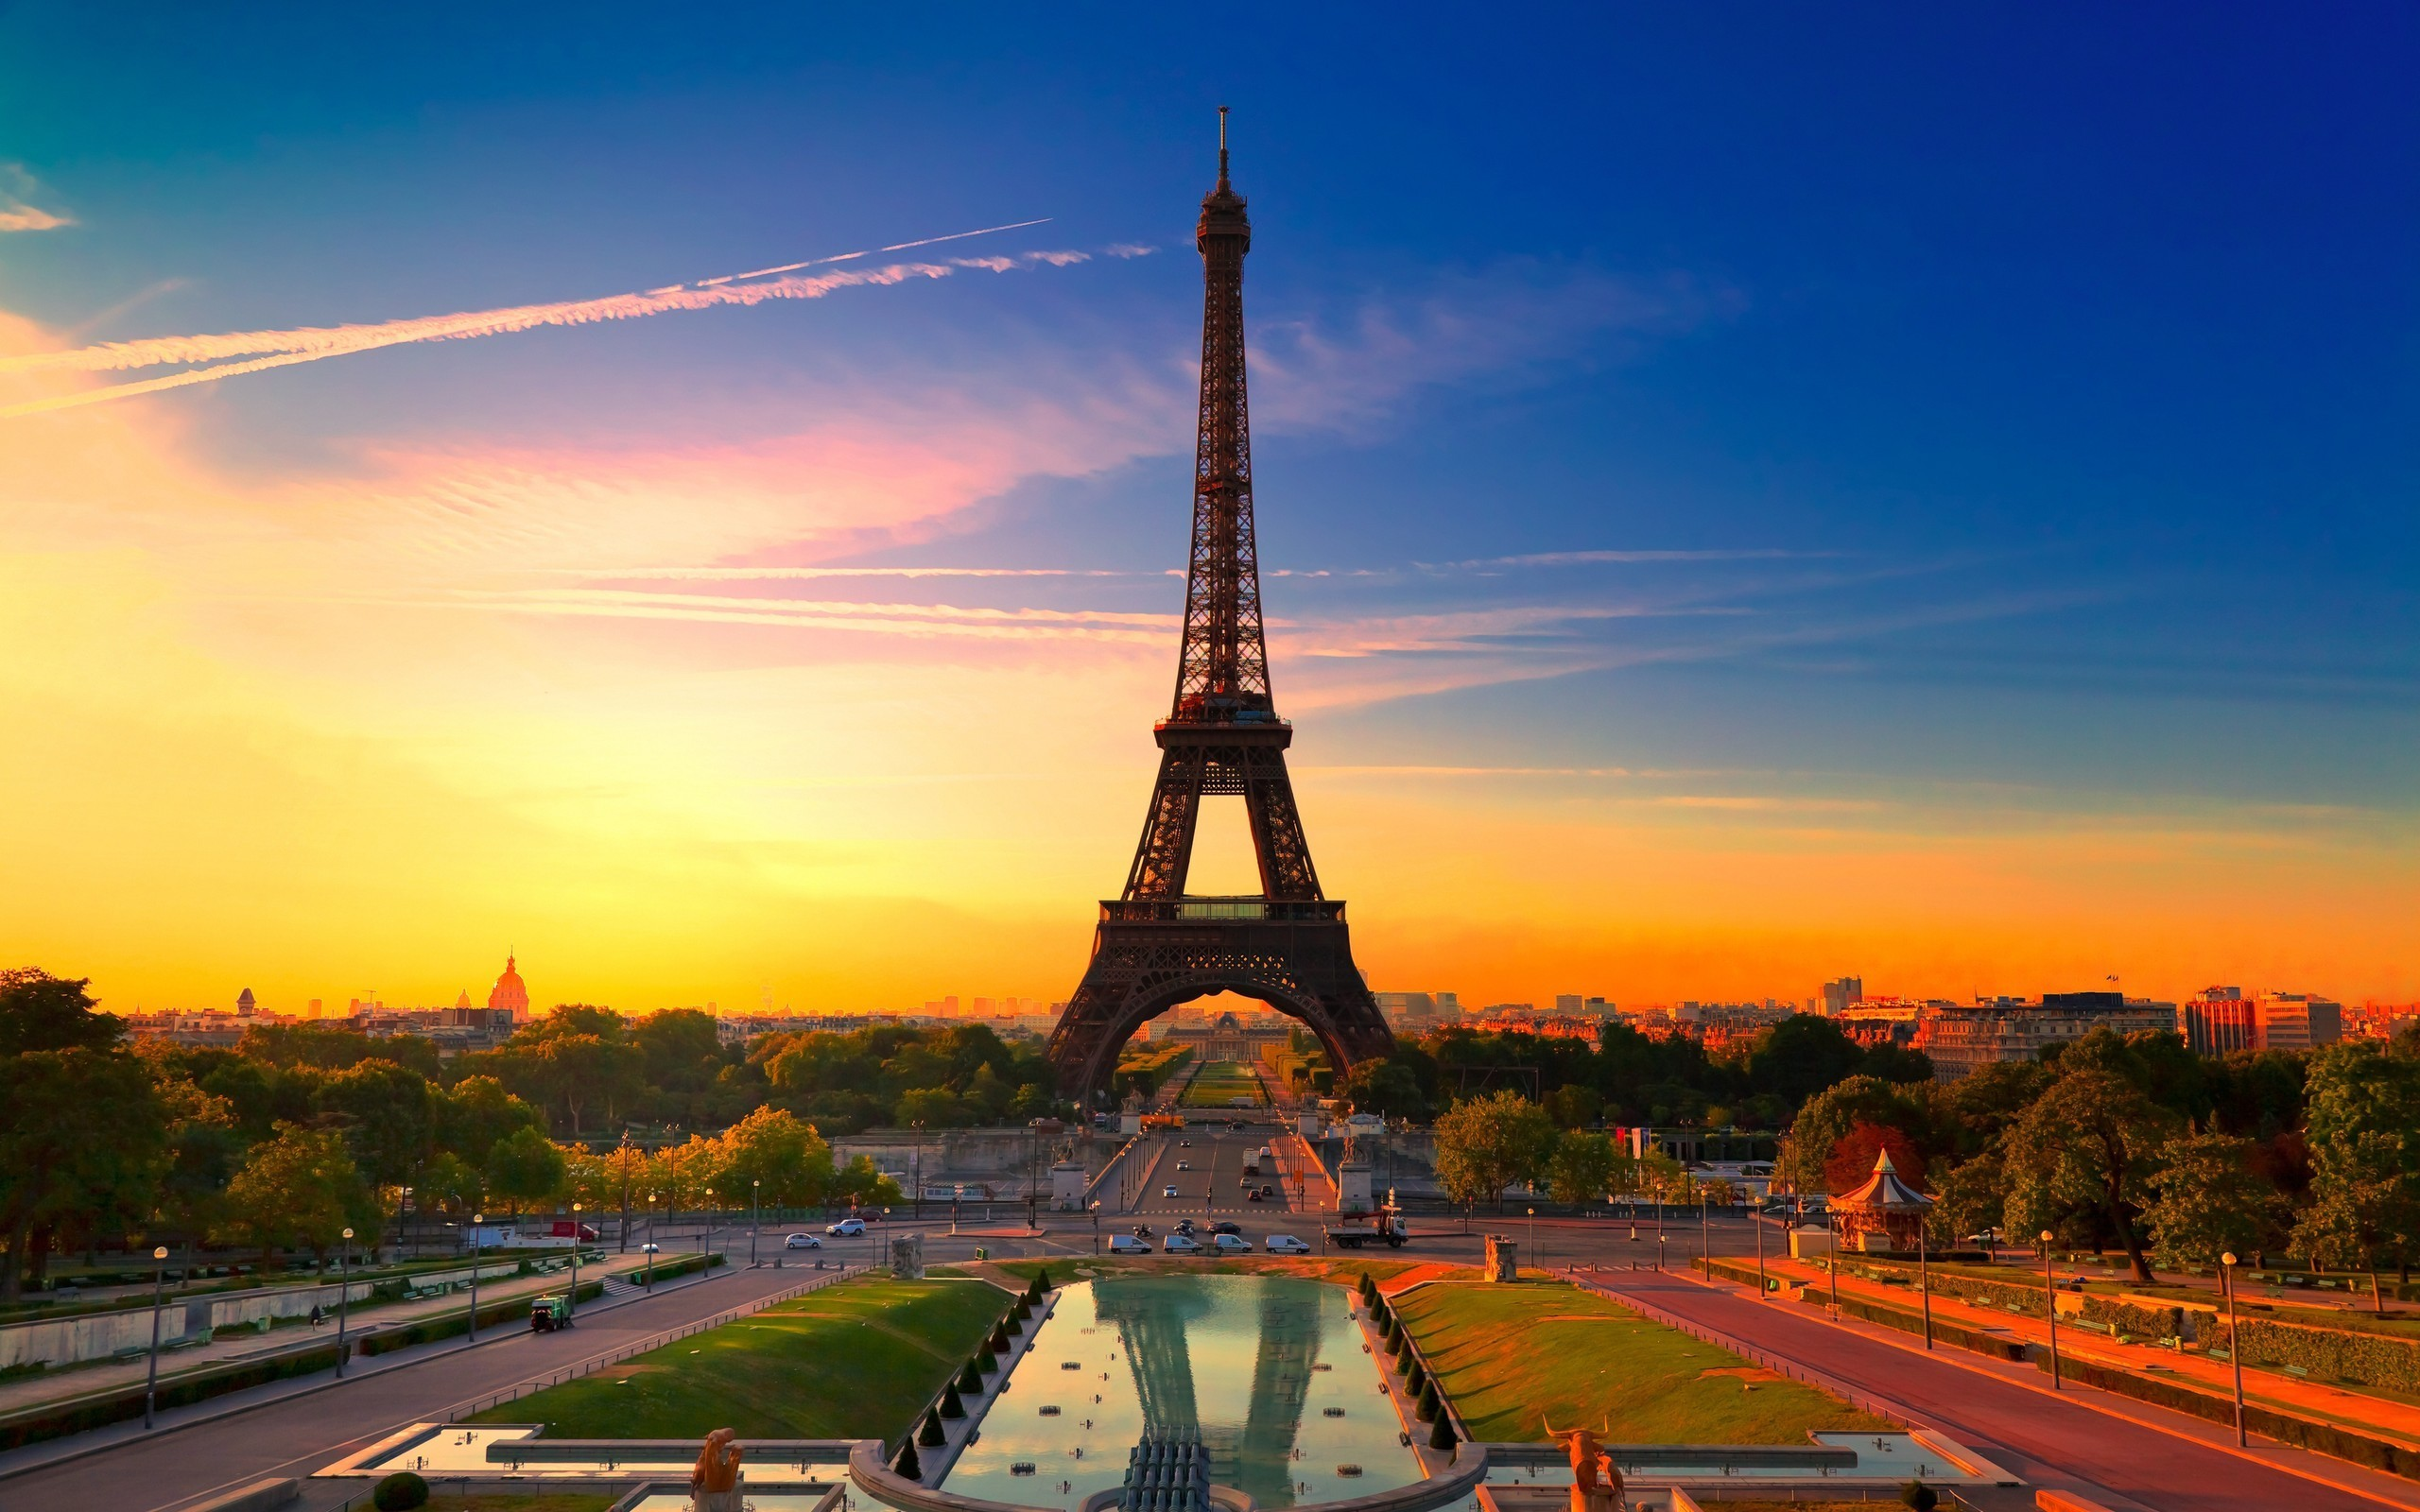 Eiffel Tower Paris cityscapes